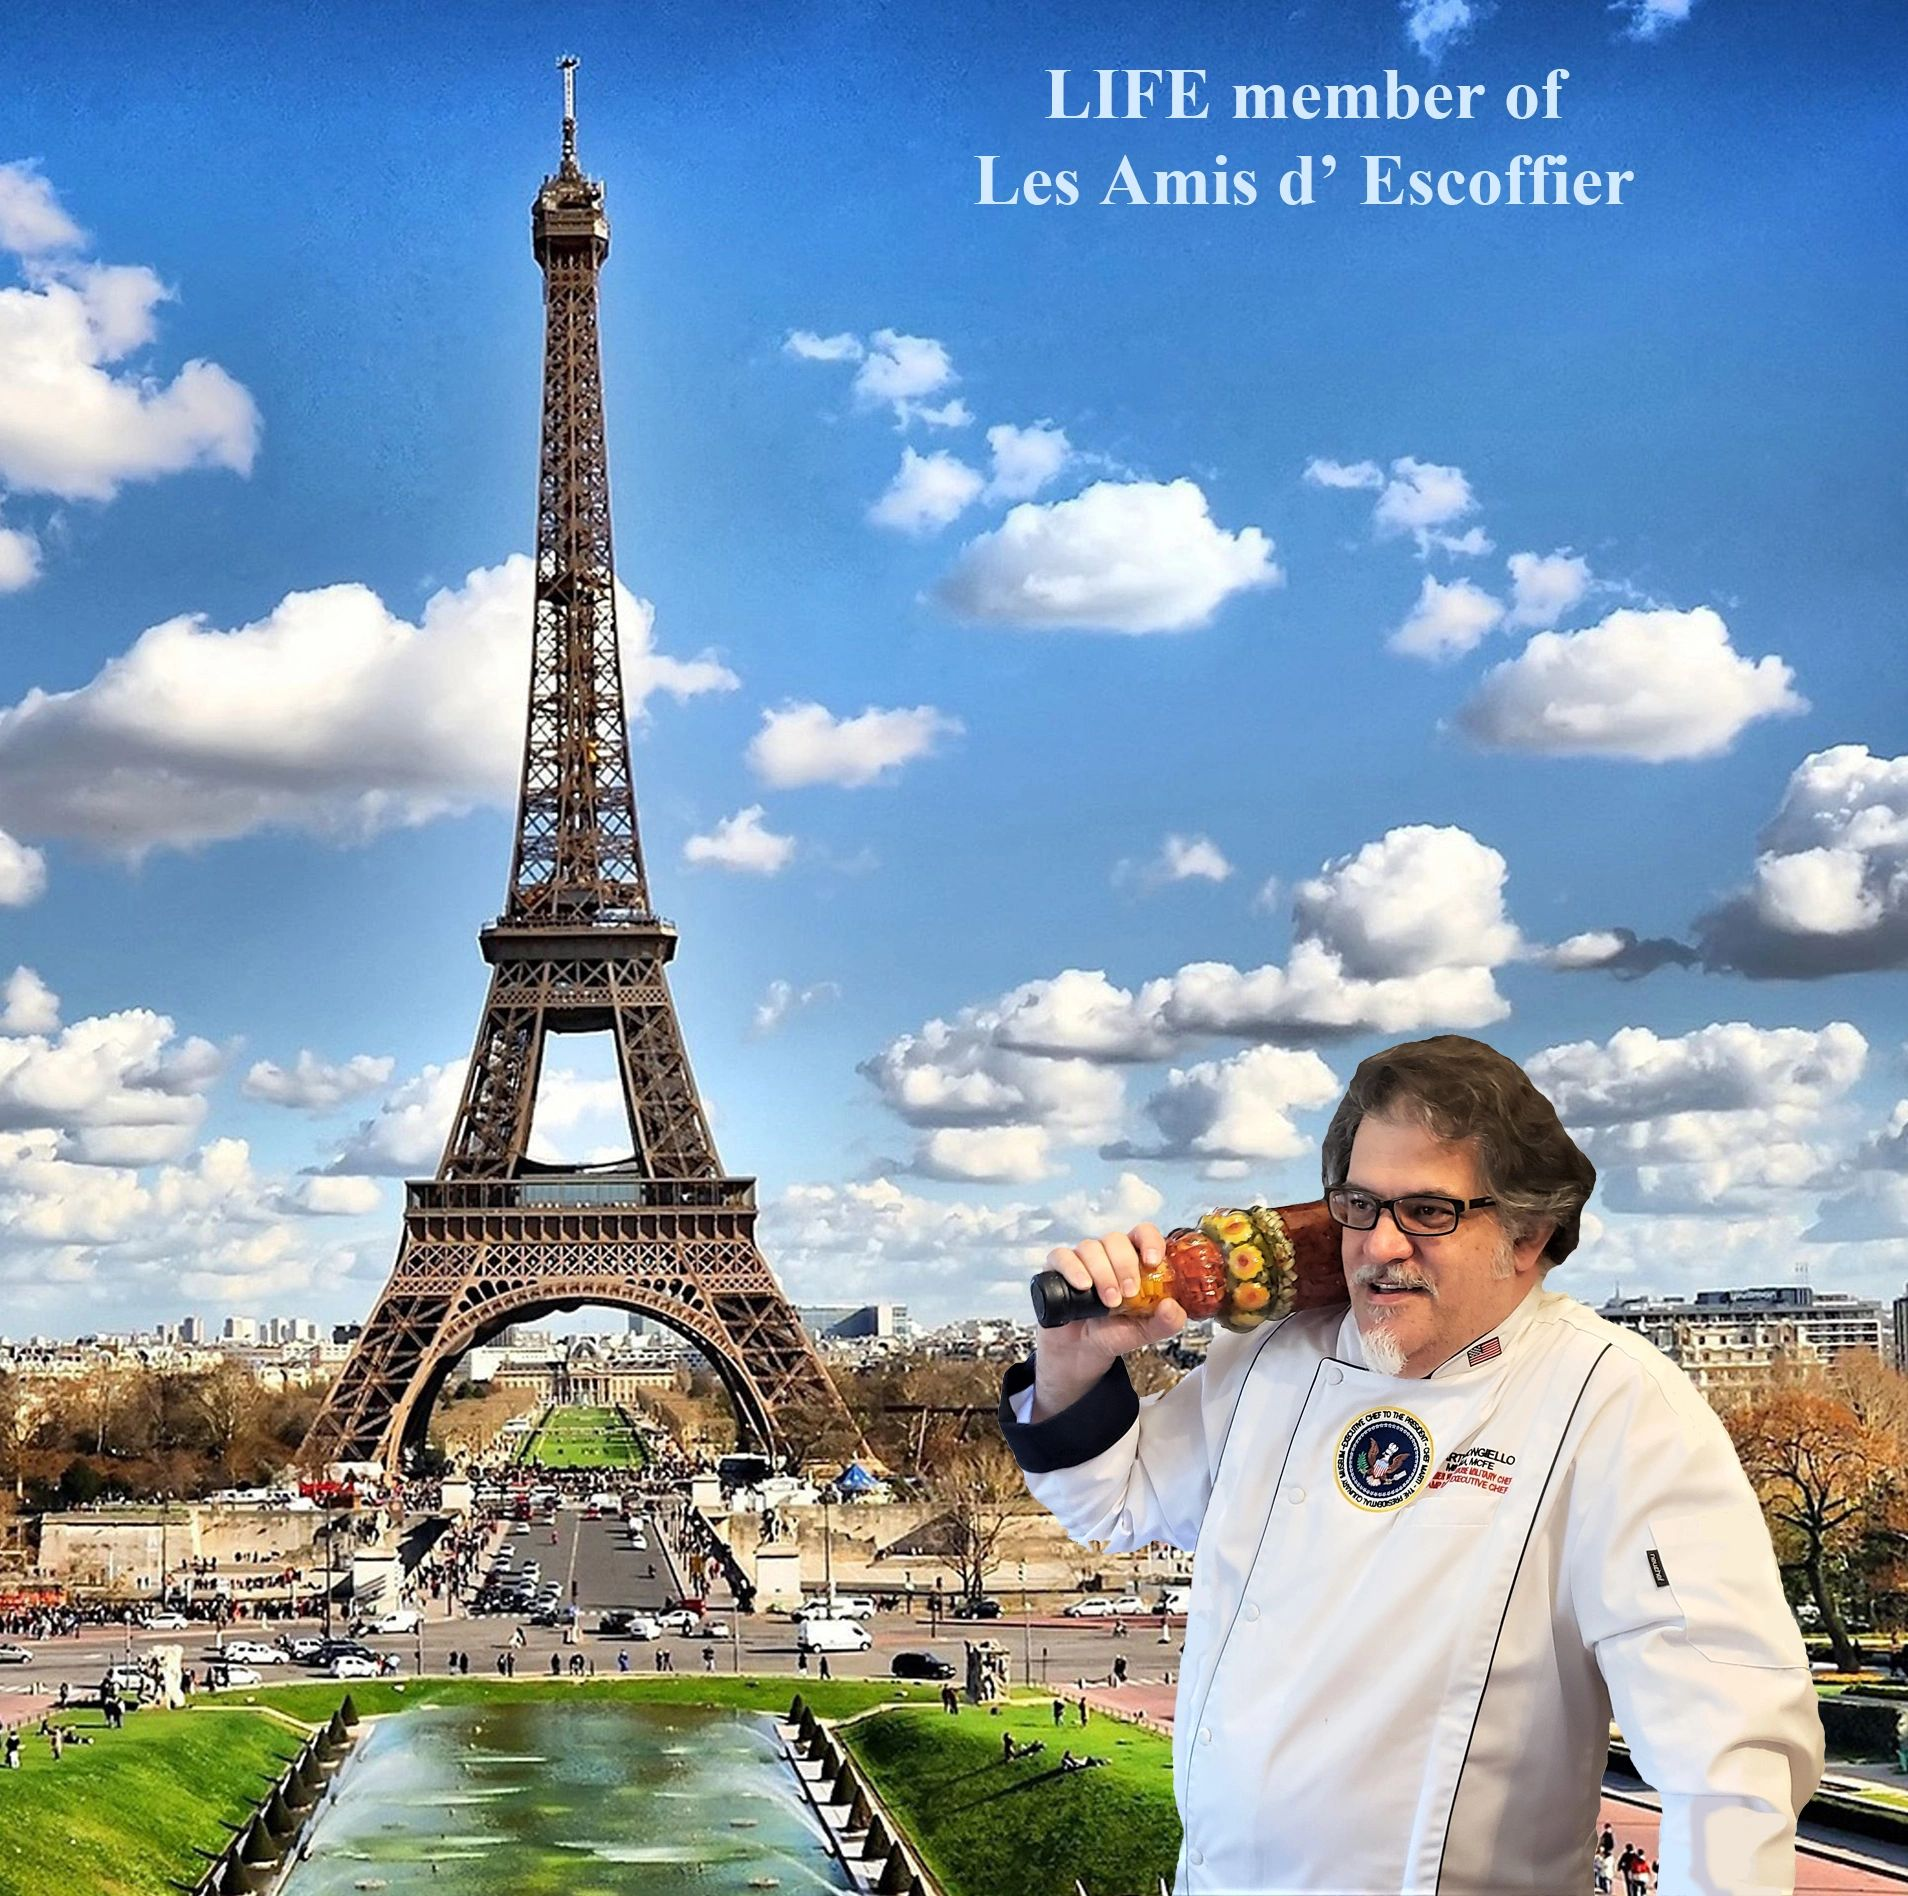 A photograph of Chef Marti Mongiello at the Eiffel Tower in Paris, France.